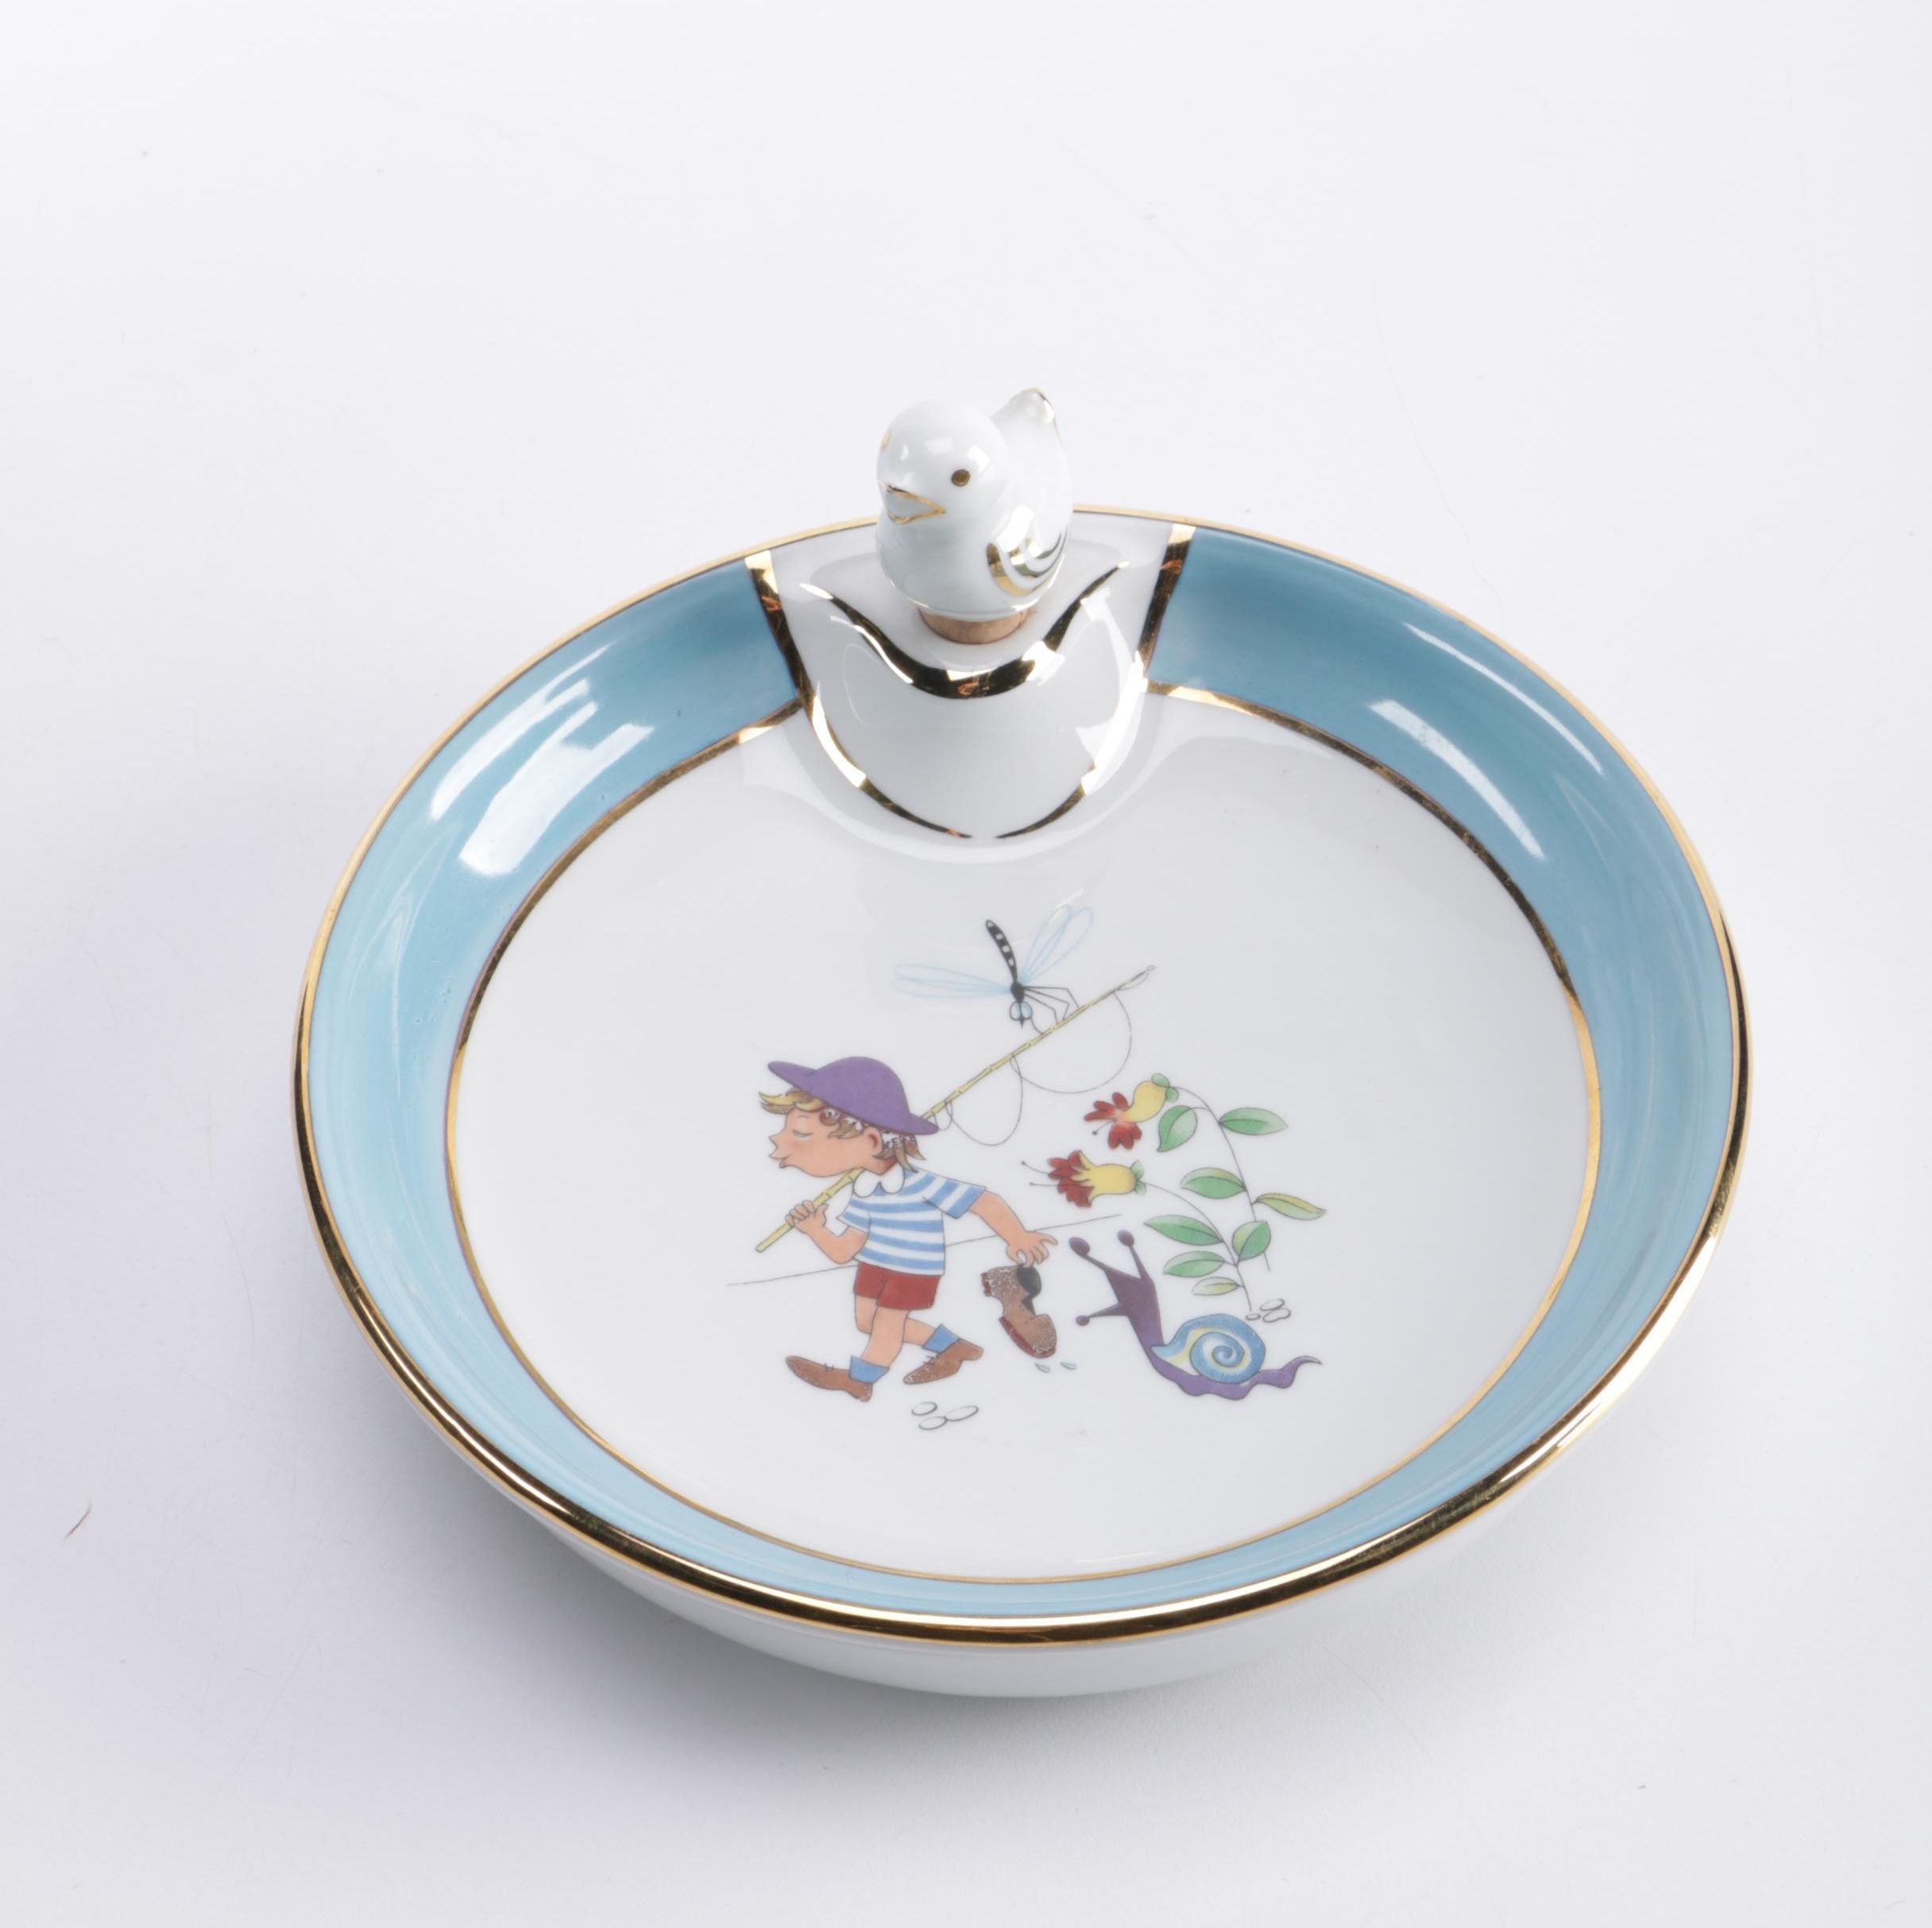 P. Pastaud Limoges Children's Plate With Hot Water Compartment